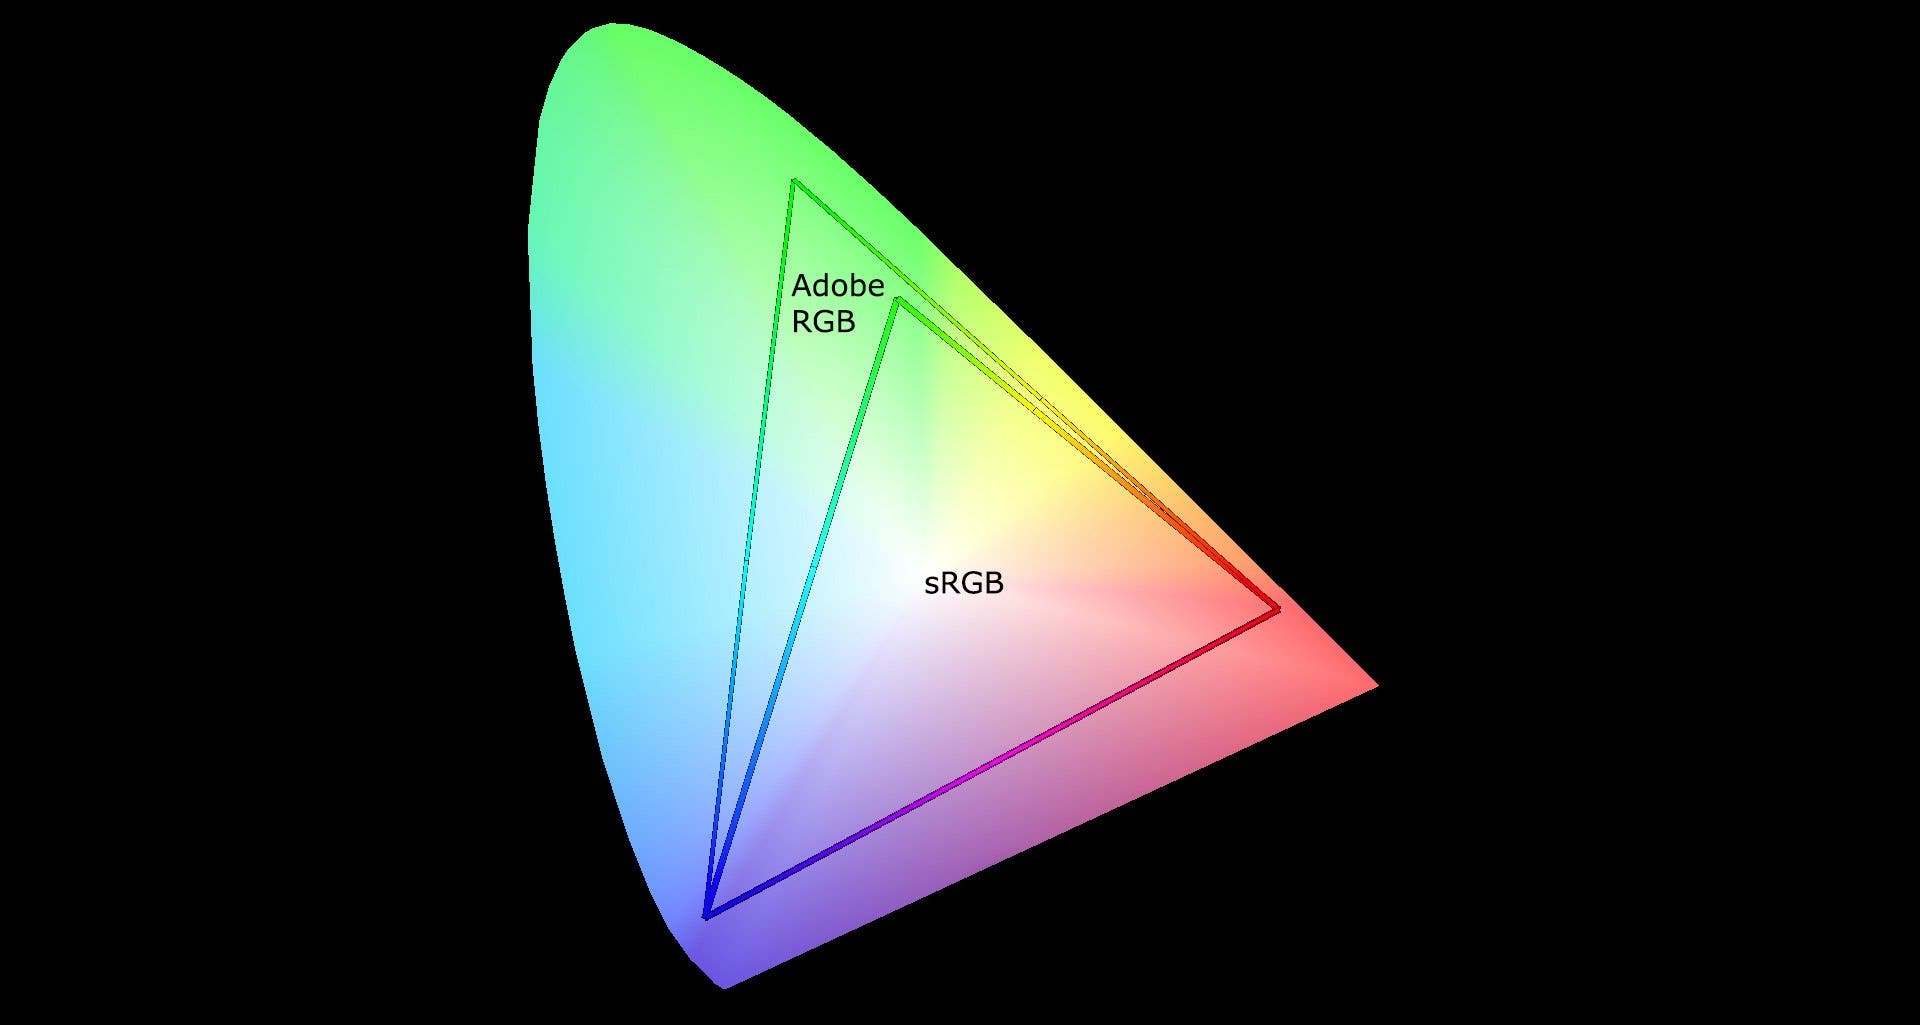 Adobe RGB vs sRGB; Which RGB Color Space Is Right For You?